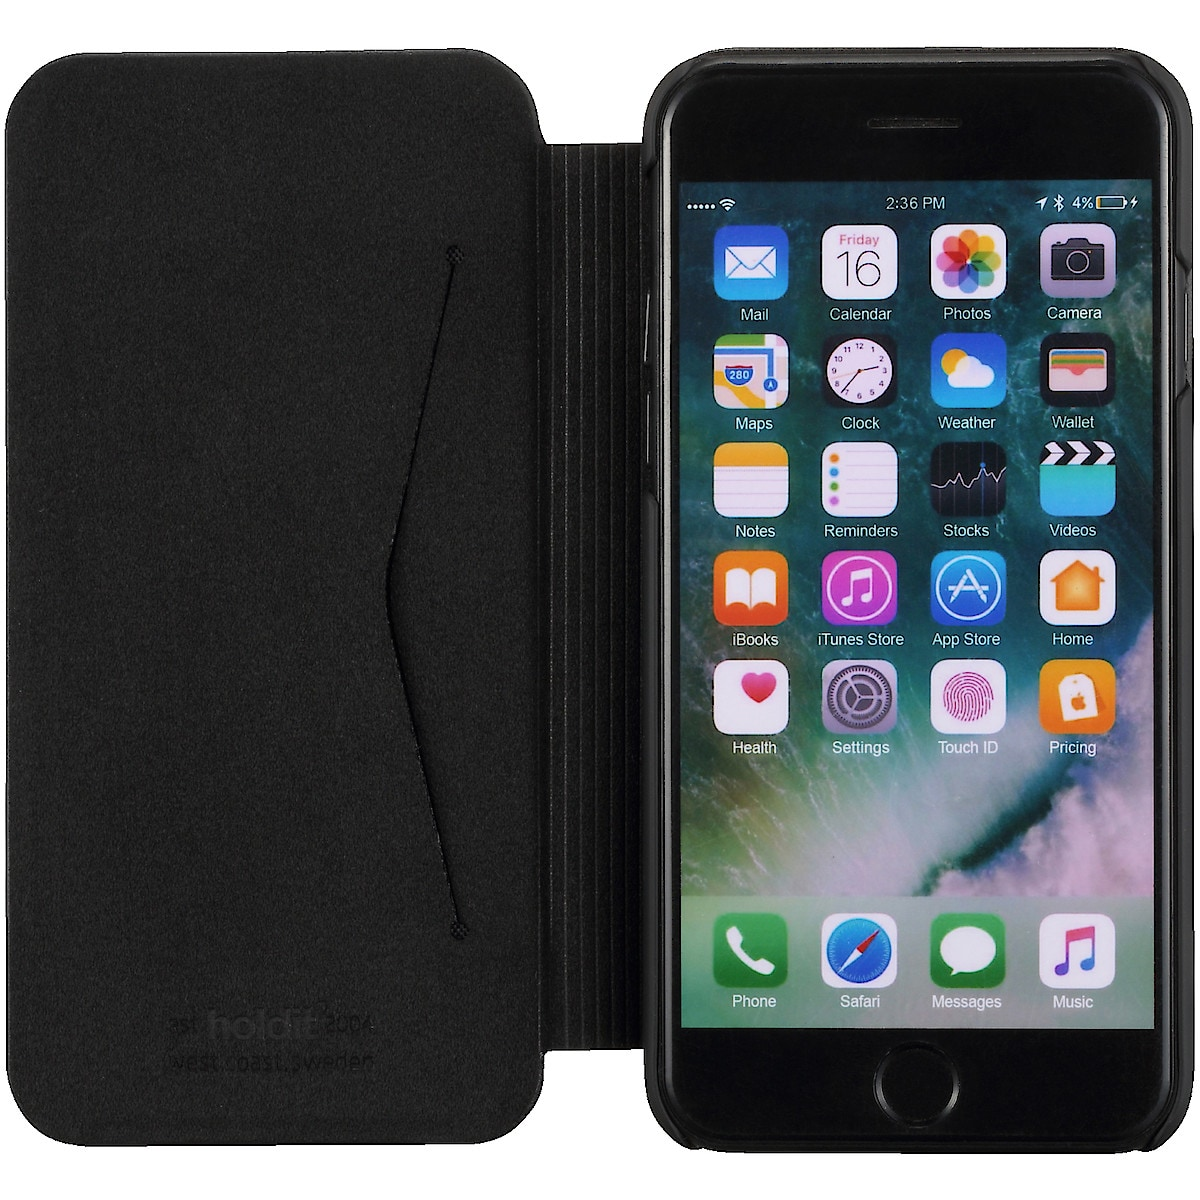 Holdit Flip Case for iPhone 6/6s/7/8